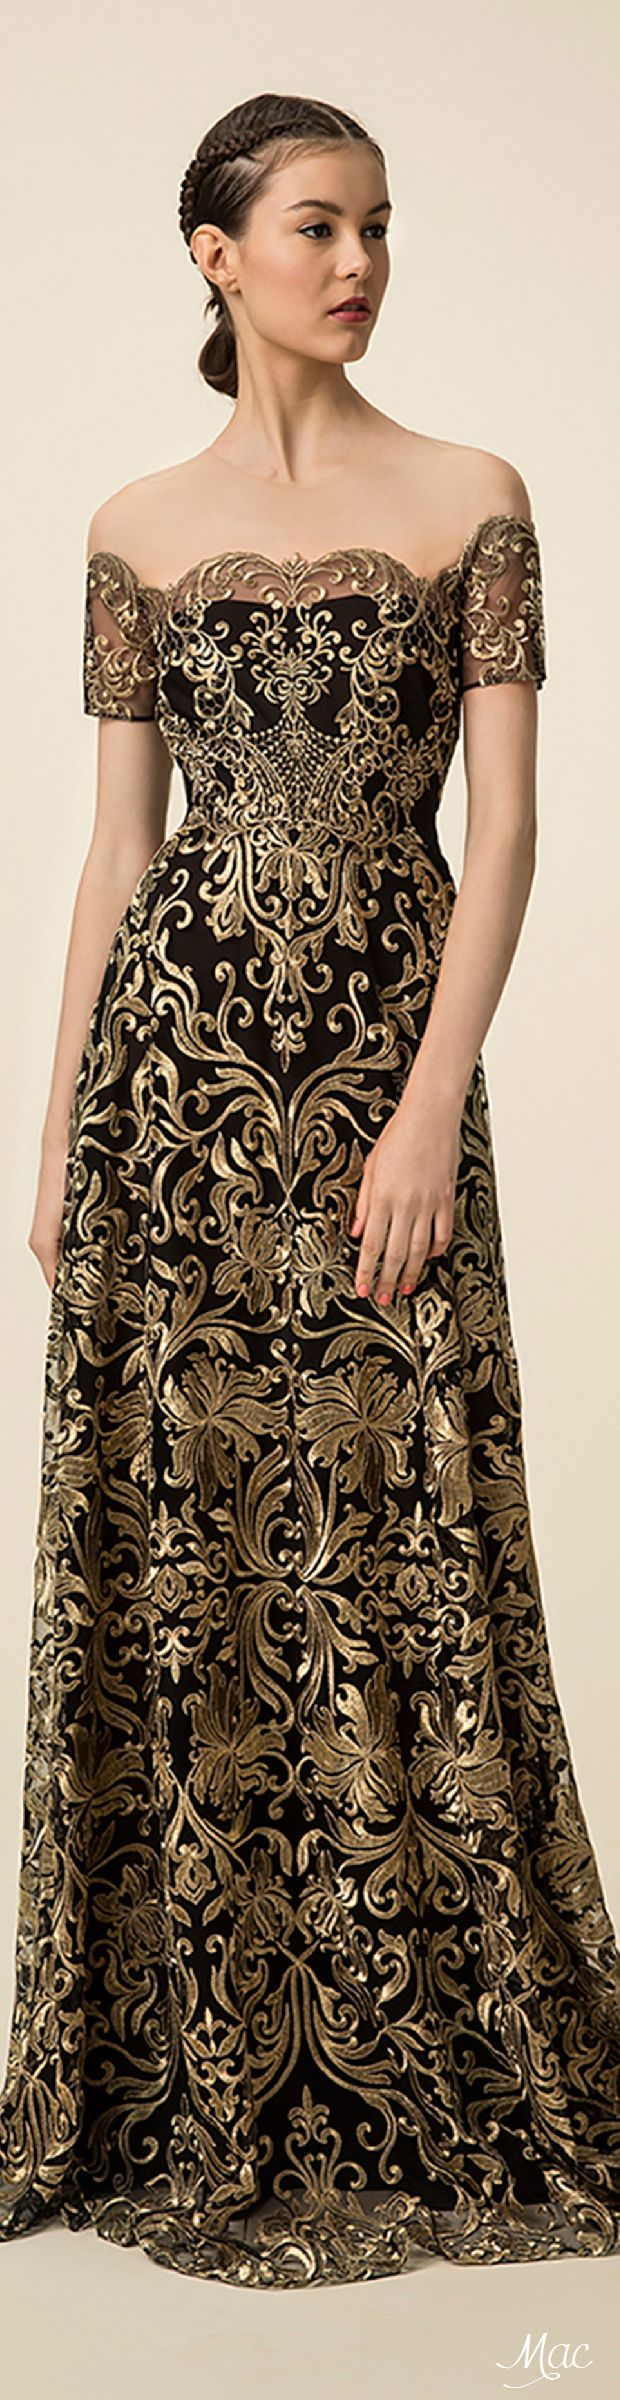 Spring 2016 Ready-to-Wear Marchesa Notte                                                                                                                                                      More